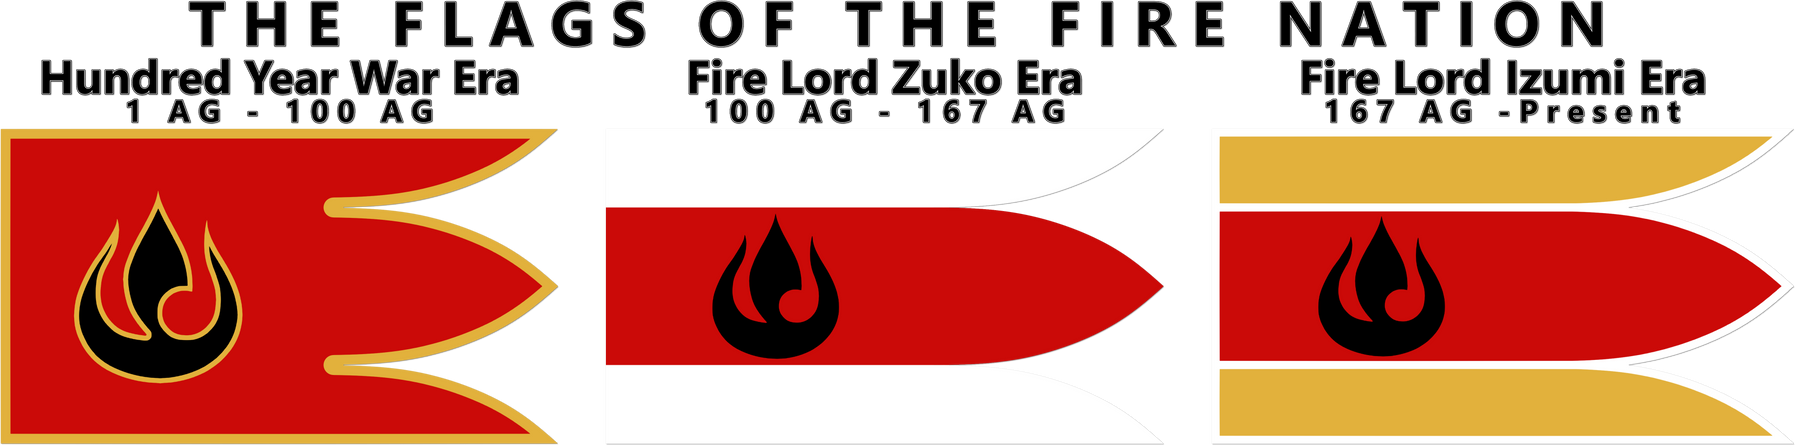 Avatar - Flags of the Fire Nation